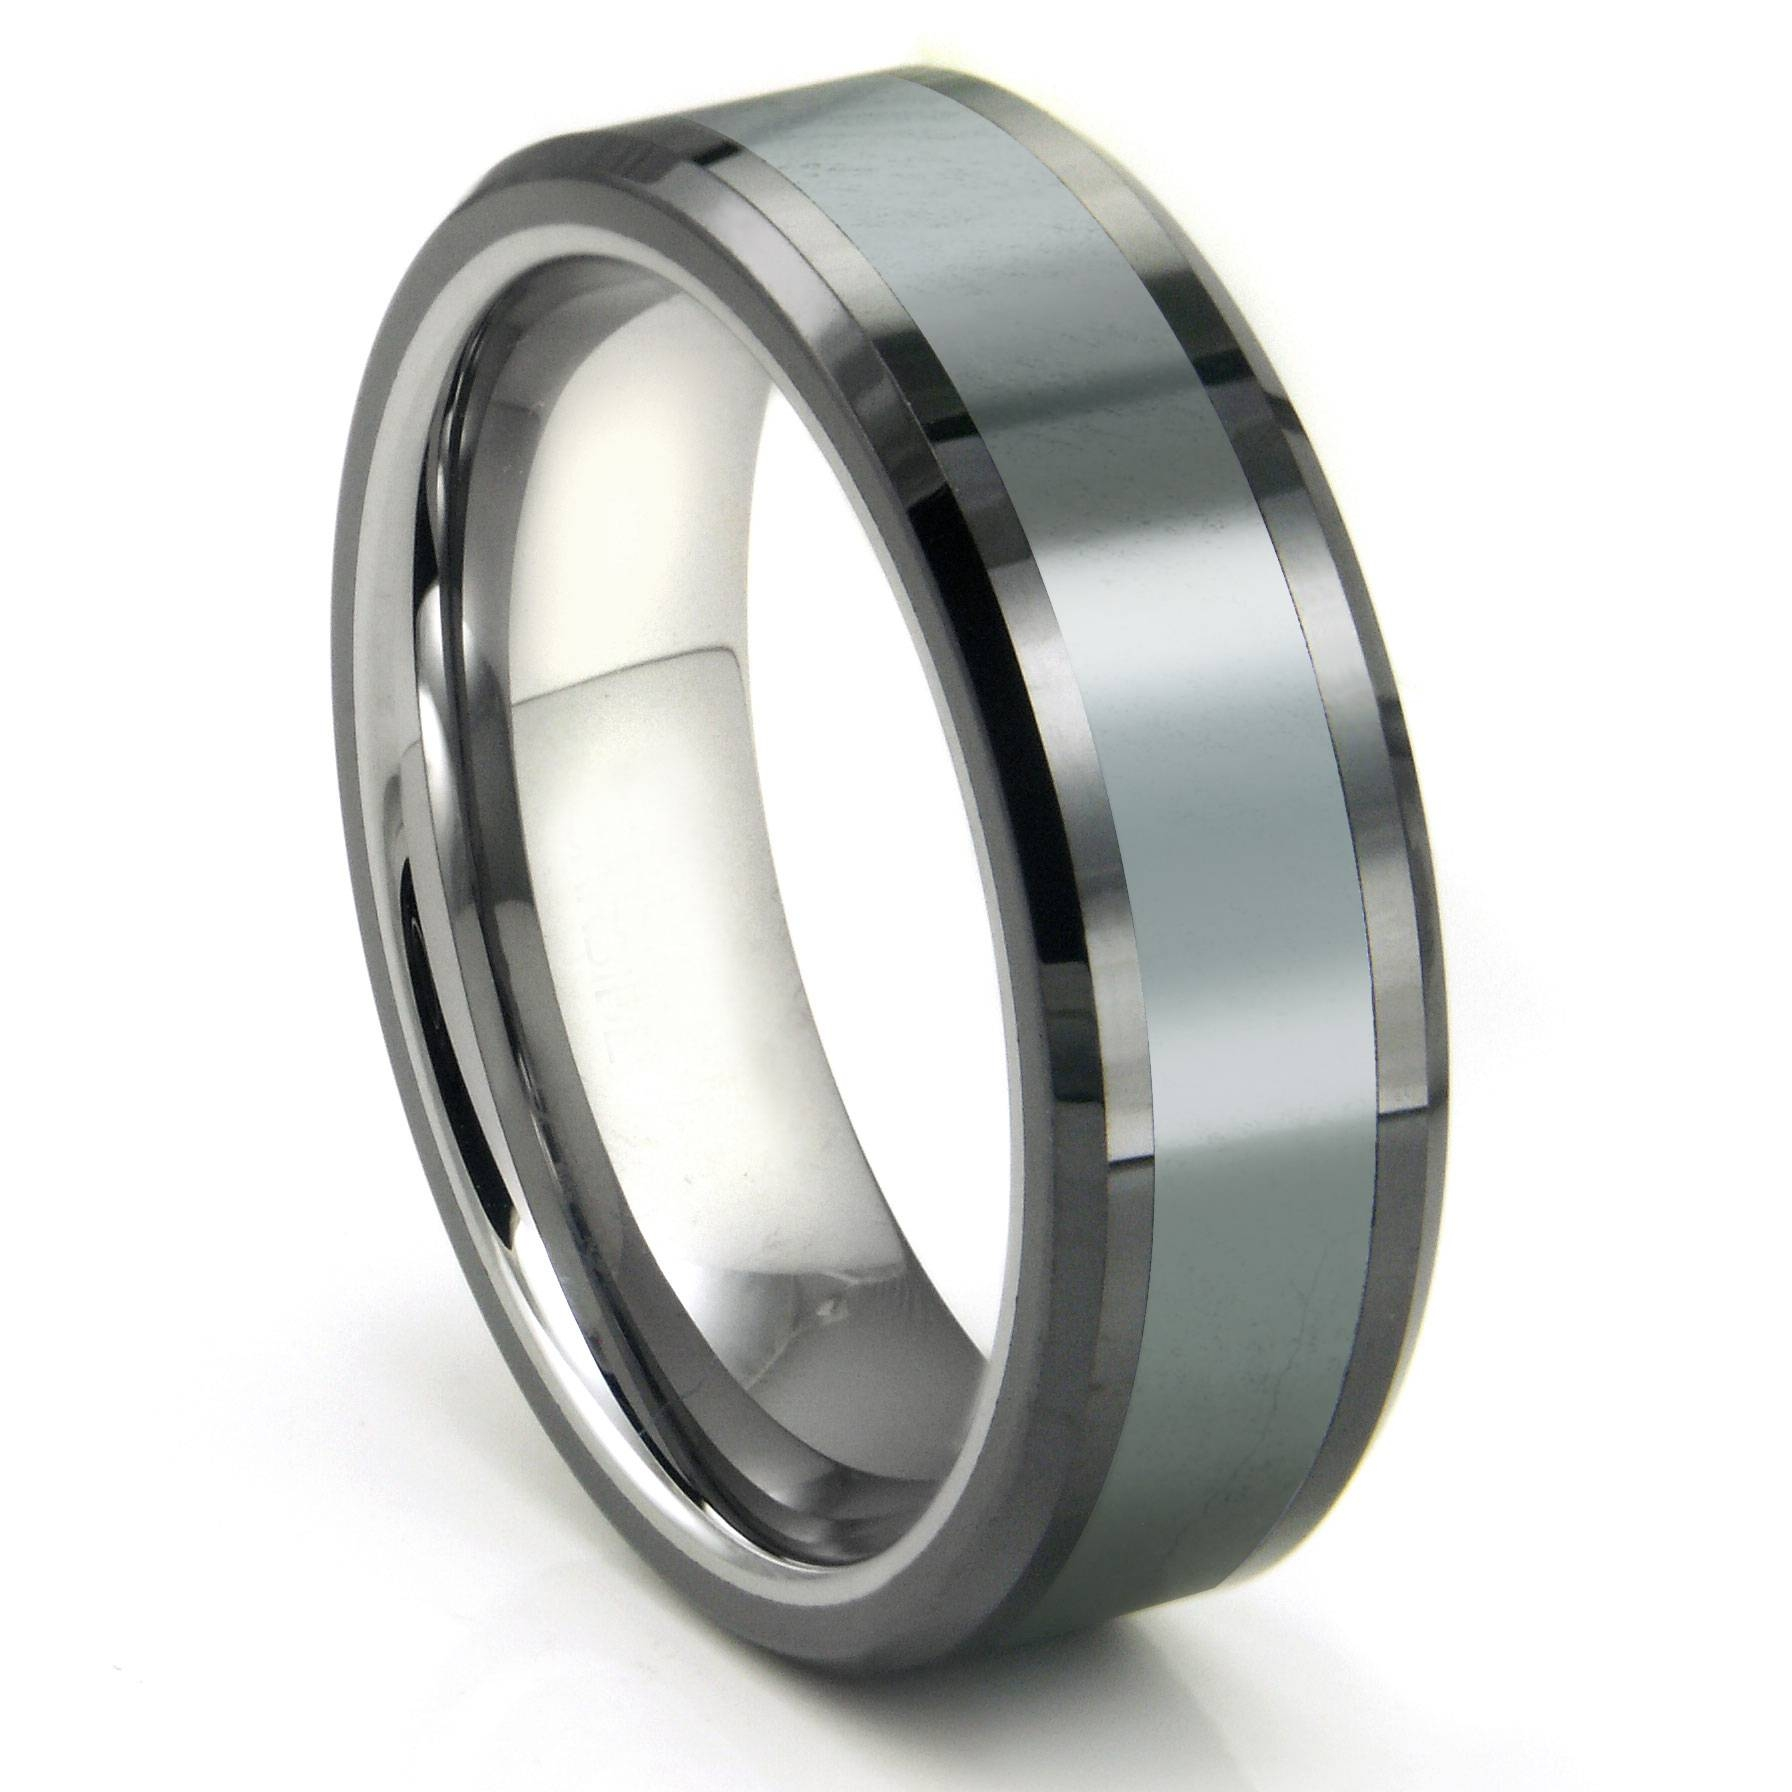 Tungsten Carbide Grey Meteorite Inlay Wedding Band Ring Pertaining To Tungsten Diamond Wedding Rings (View 12 of 15)